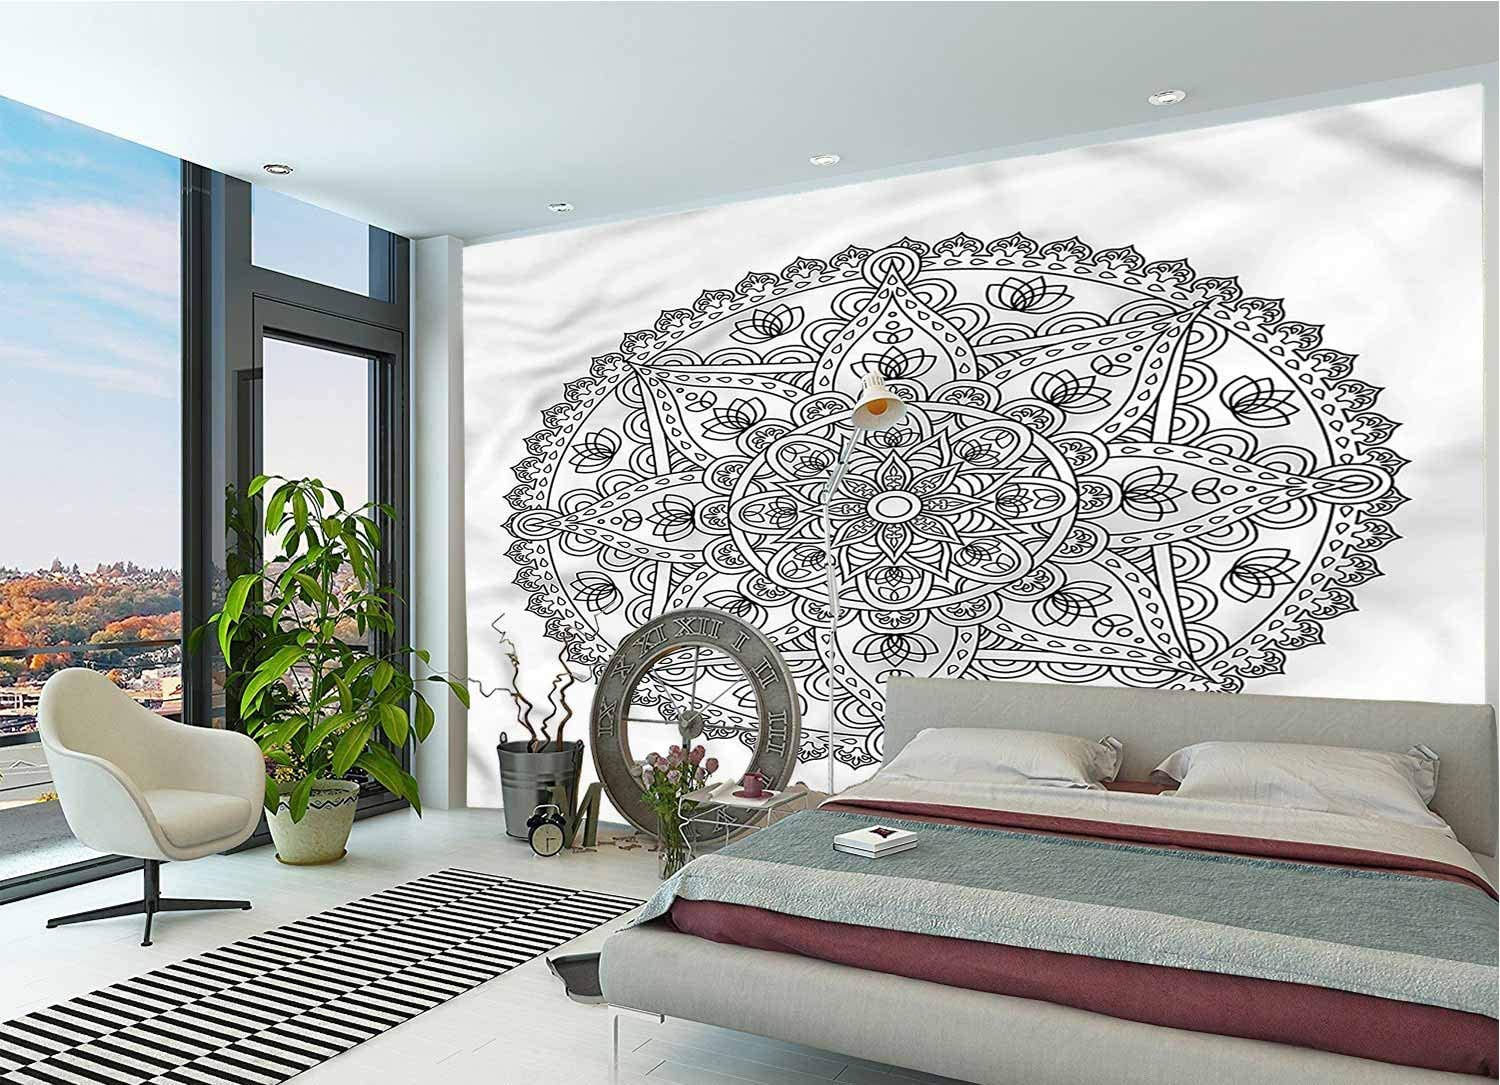 LCGGDB Lotus Wall Stickers Murals,Round Boho Motif Design Paperhanging Wallpaper for Office Livingroom Girls Bedroom Family Wall Decals-144x100 Inch